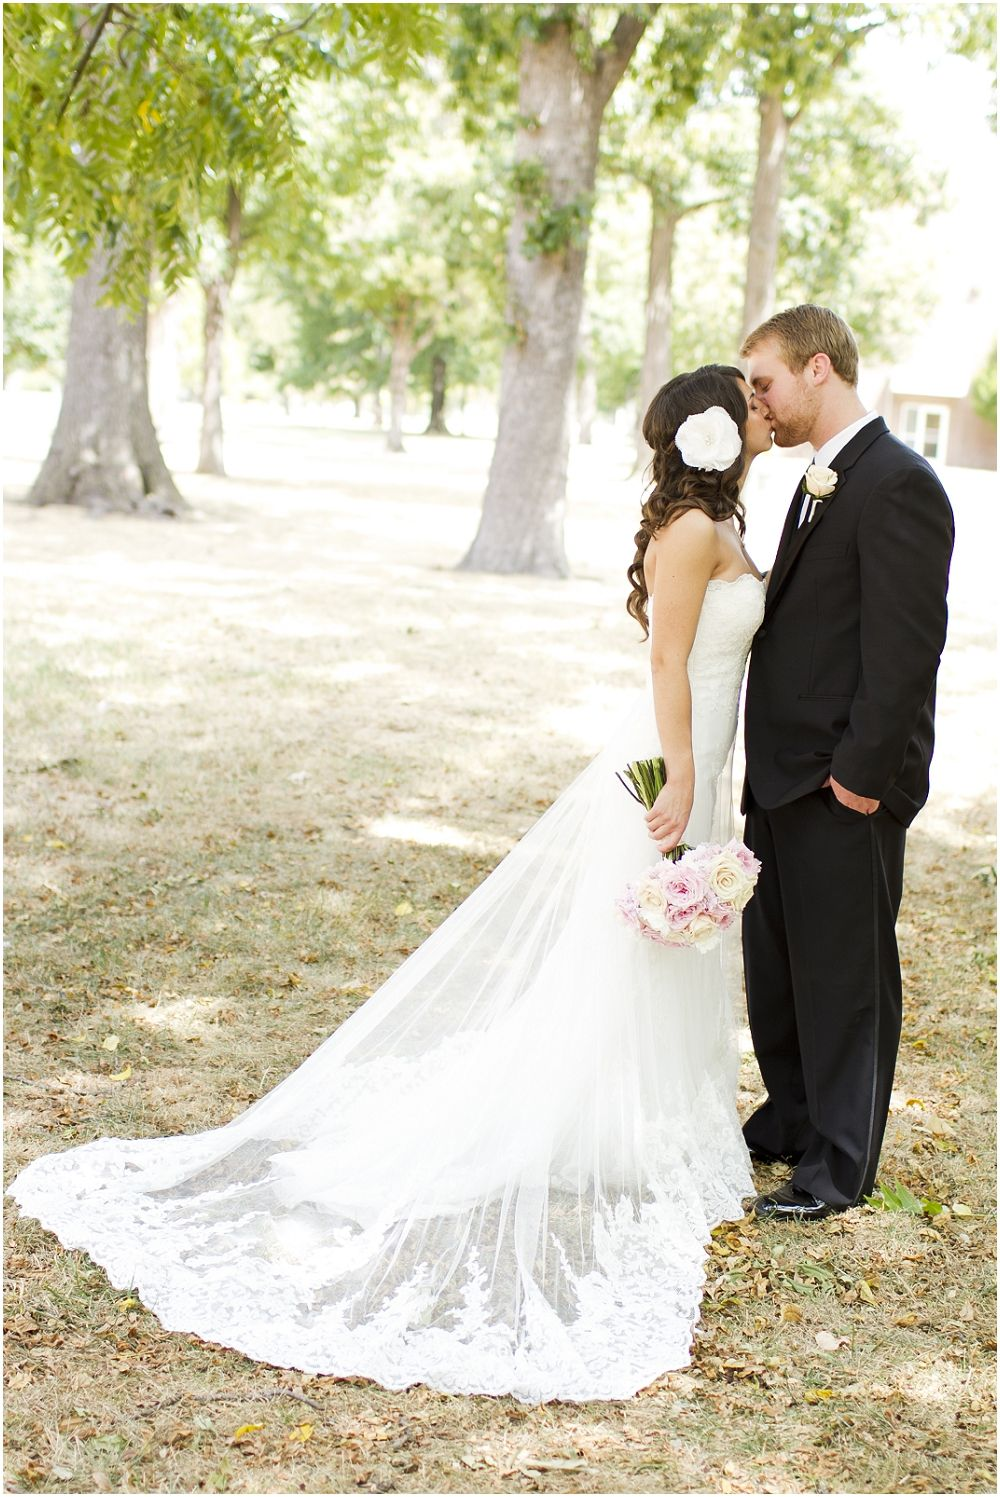 Flowy wedding dress, love the dress